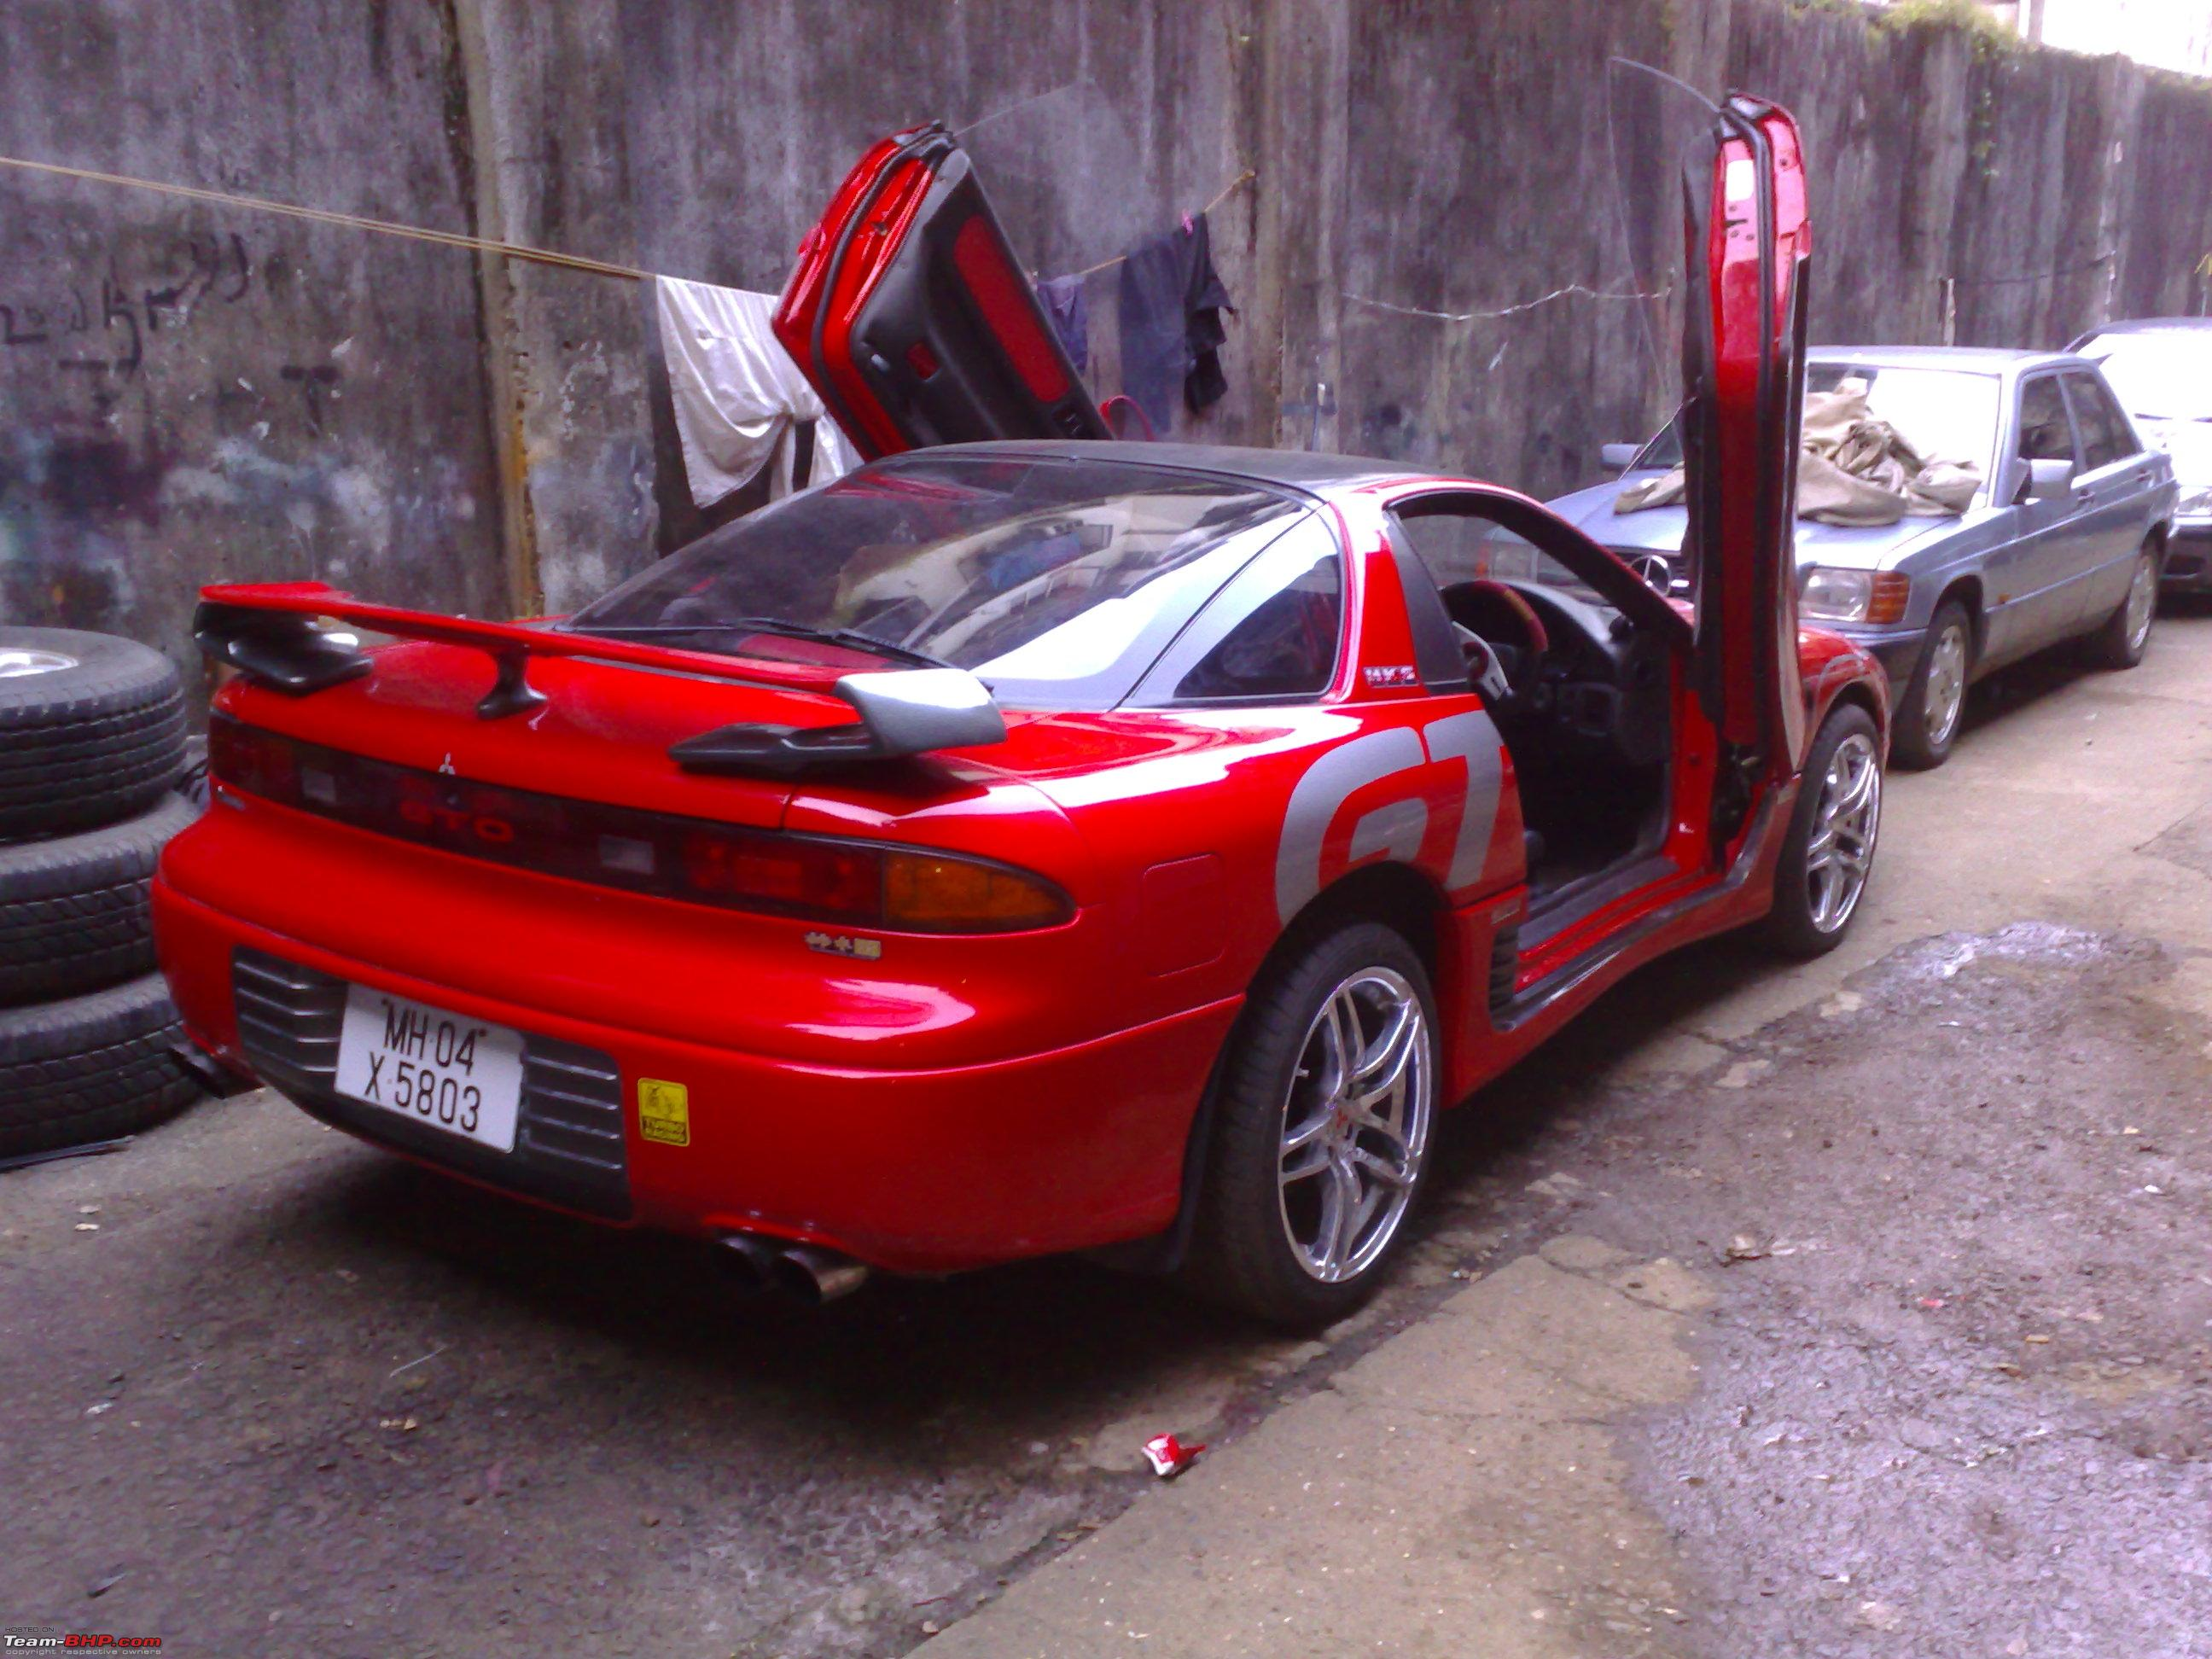 Pics mitsubishi gto 3000gt stealths in india page 4 team bhp pics mitsubishi gto 3000gt stealths in india gto5g sciox Image collections